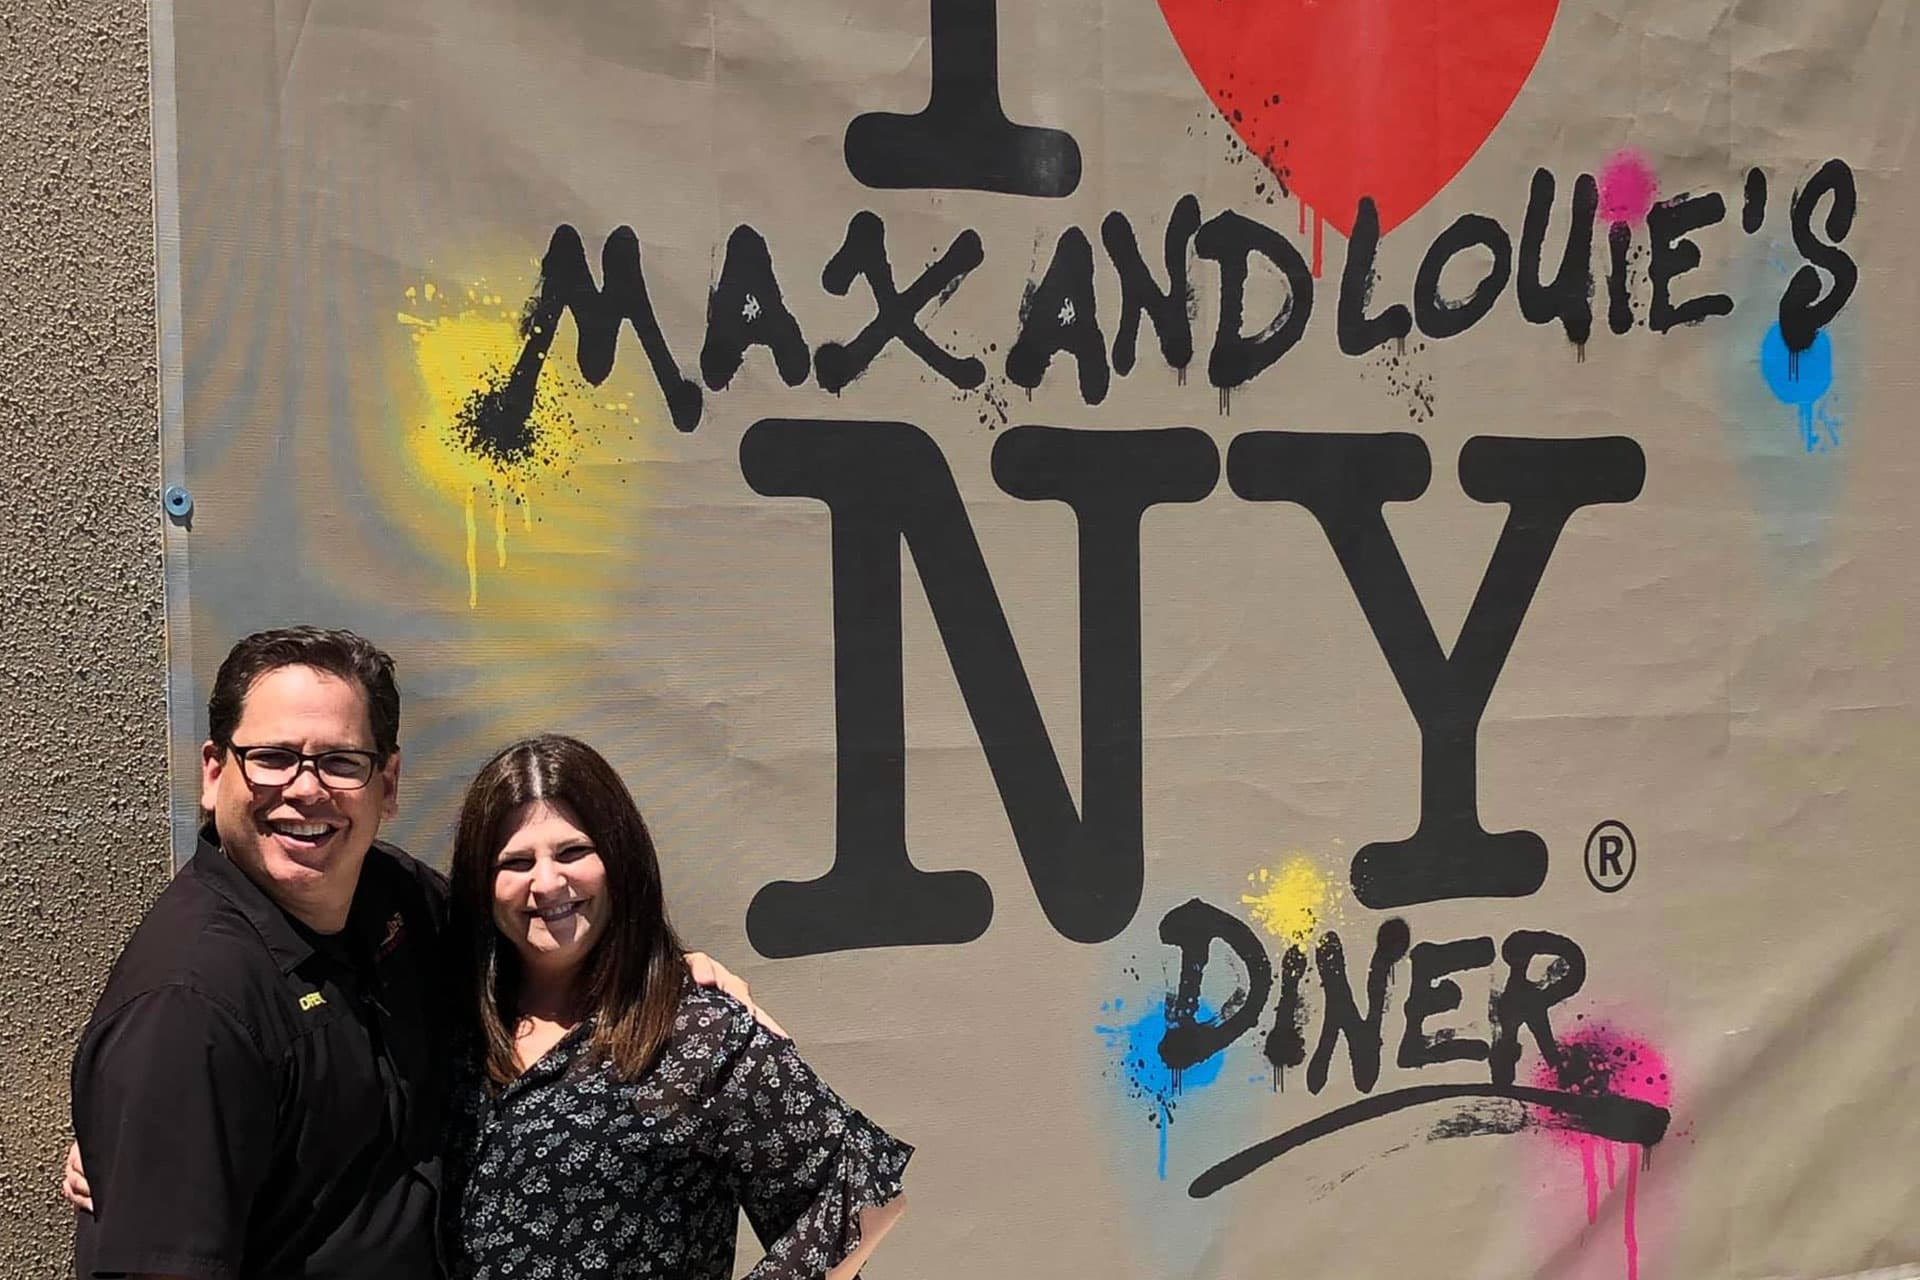 Owners of Max and Louie's New York Diner standing in front of graffiti signage